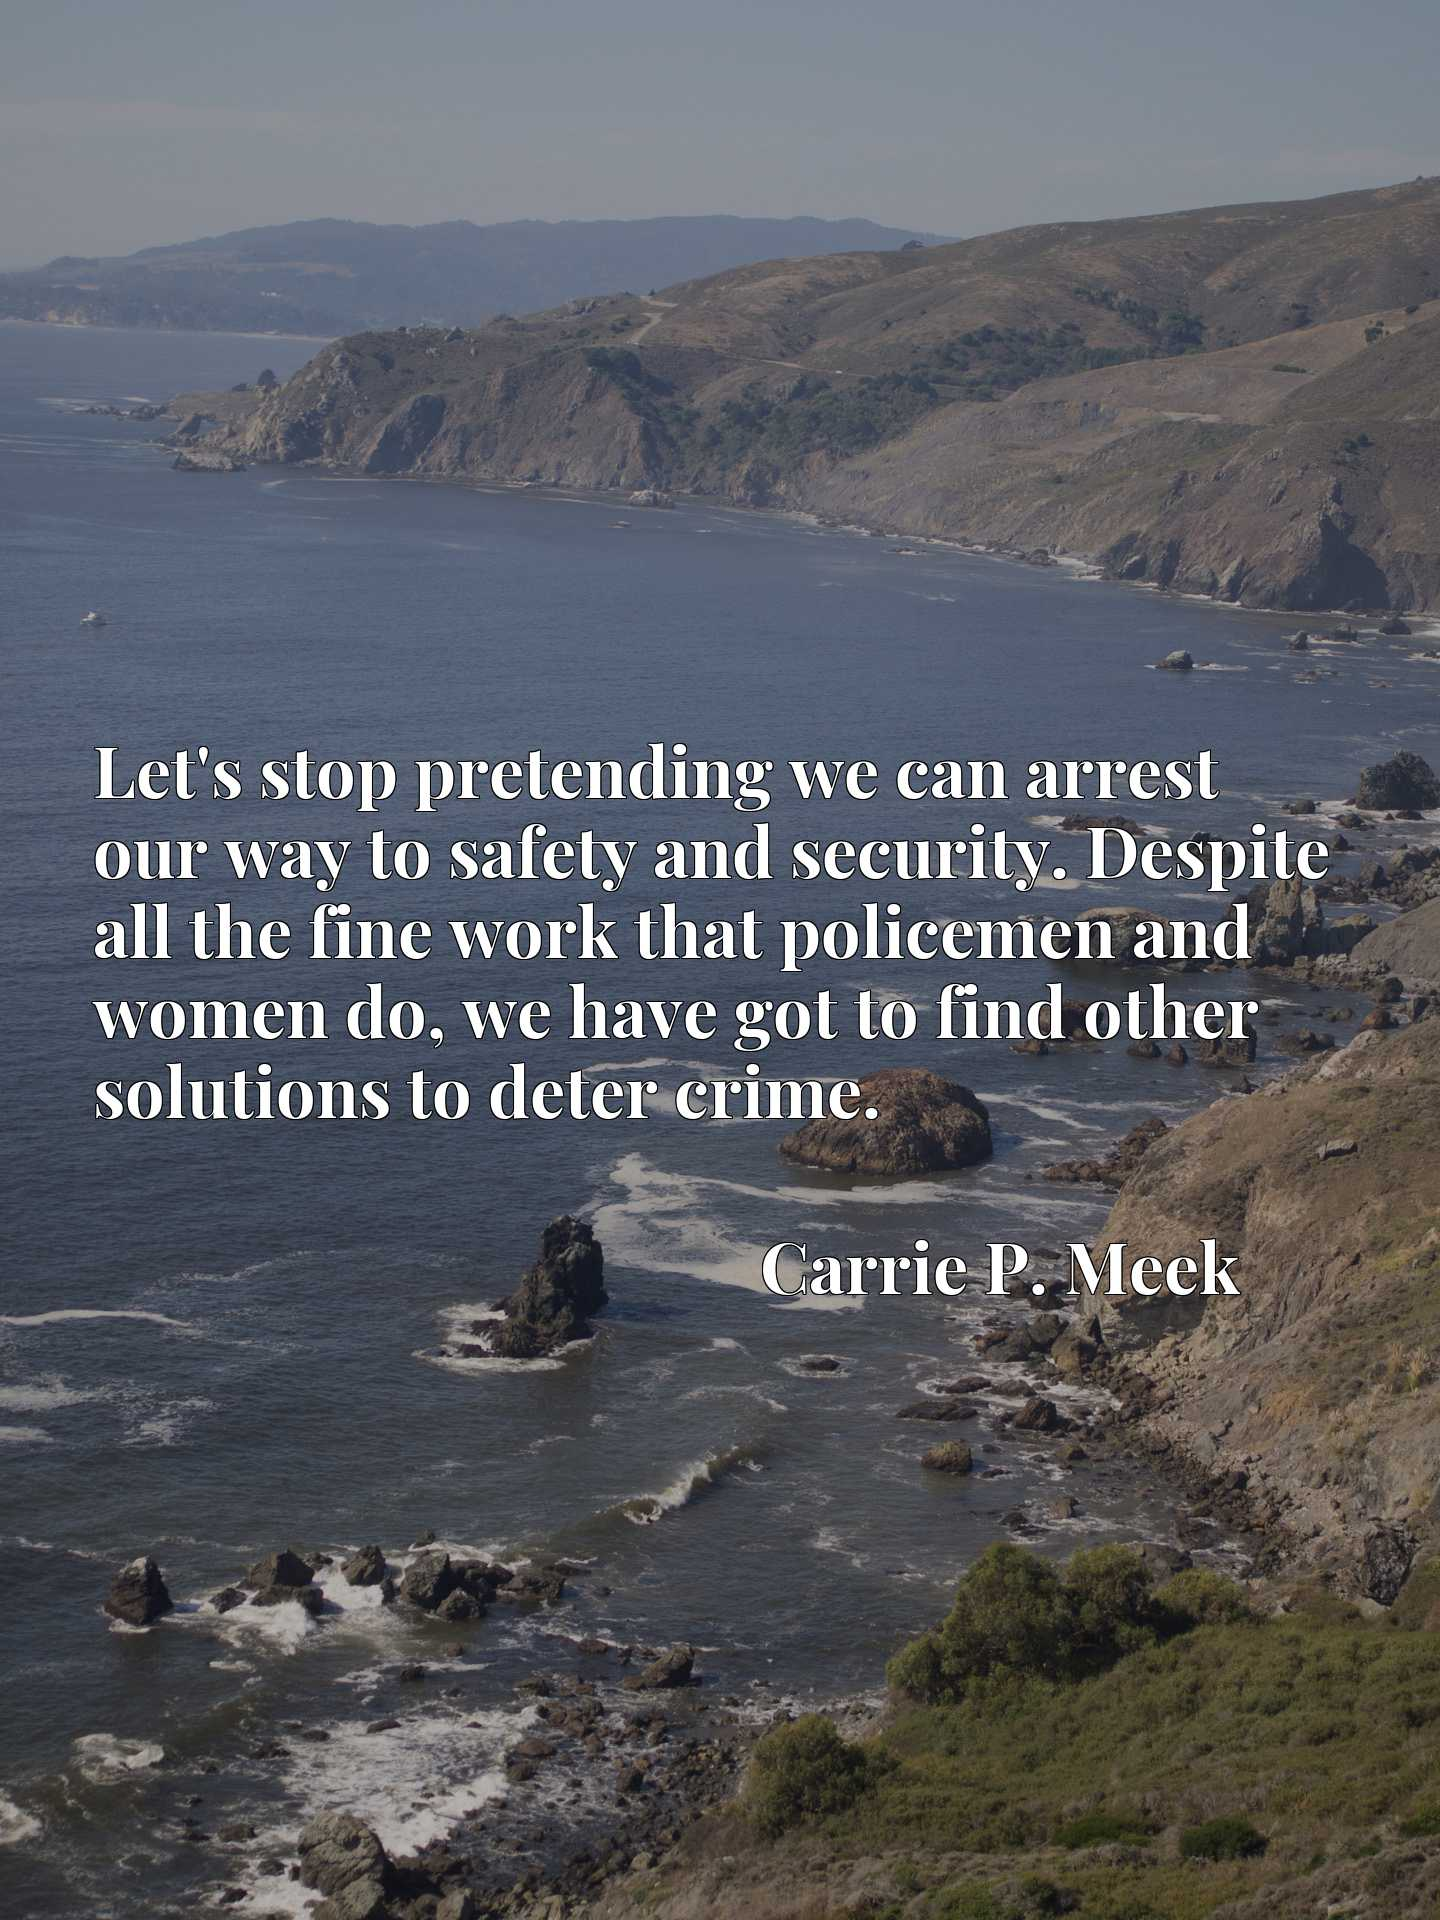 Let's stop pretending we can arrest our way to safety and security. Despite all the fine work that policemen and women do, we have got to find other solutions to deter crime.